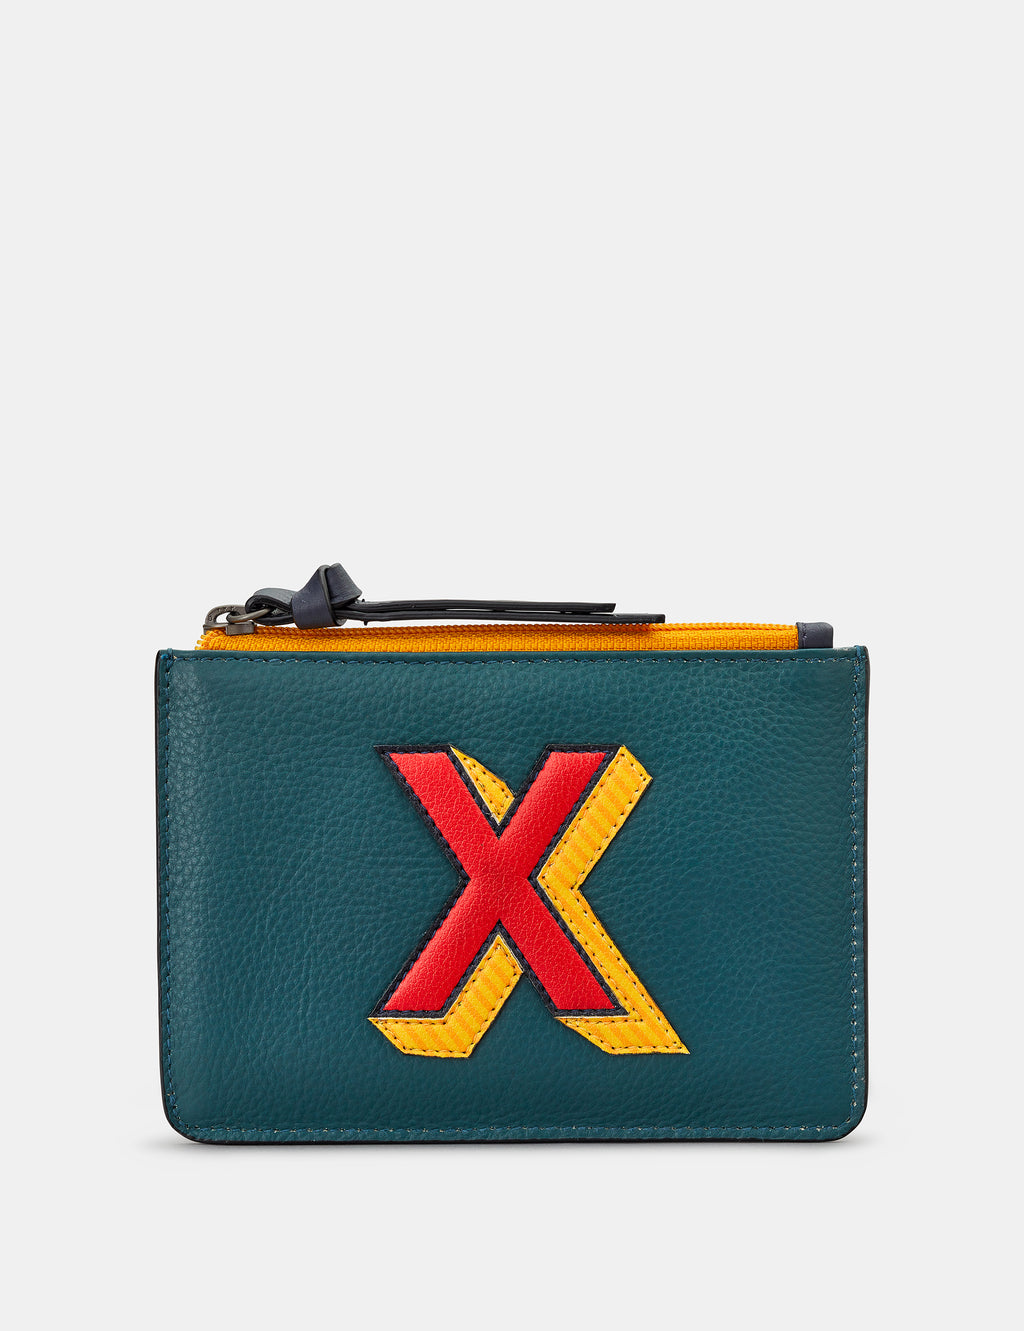 X Initials Teal Leather Zip Top Purse